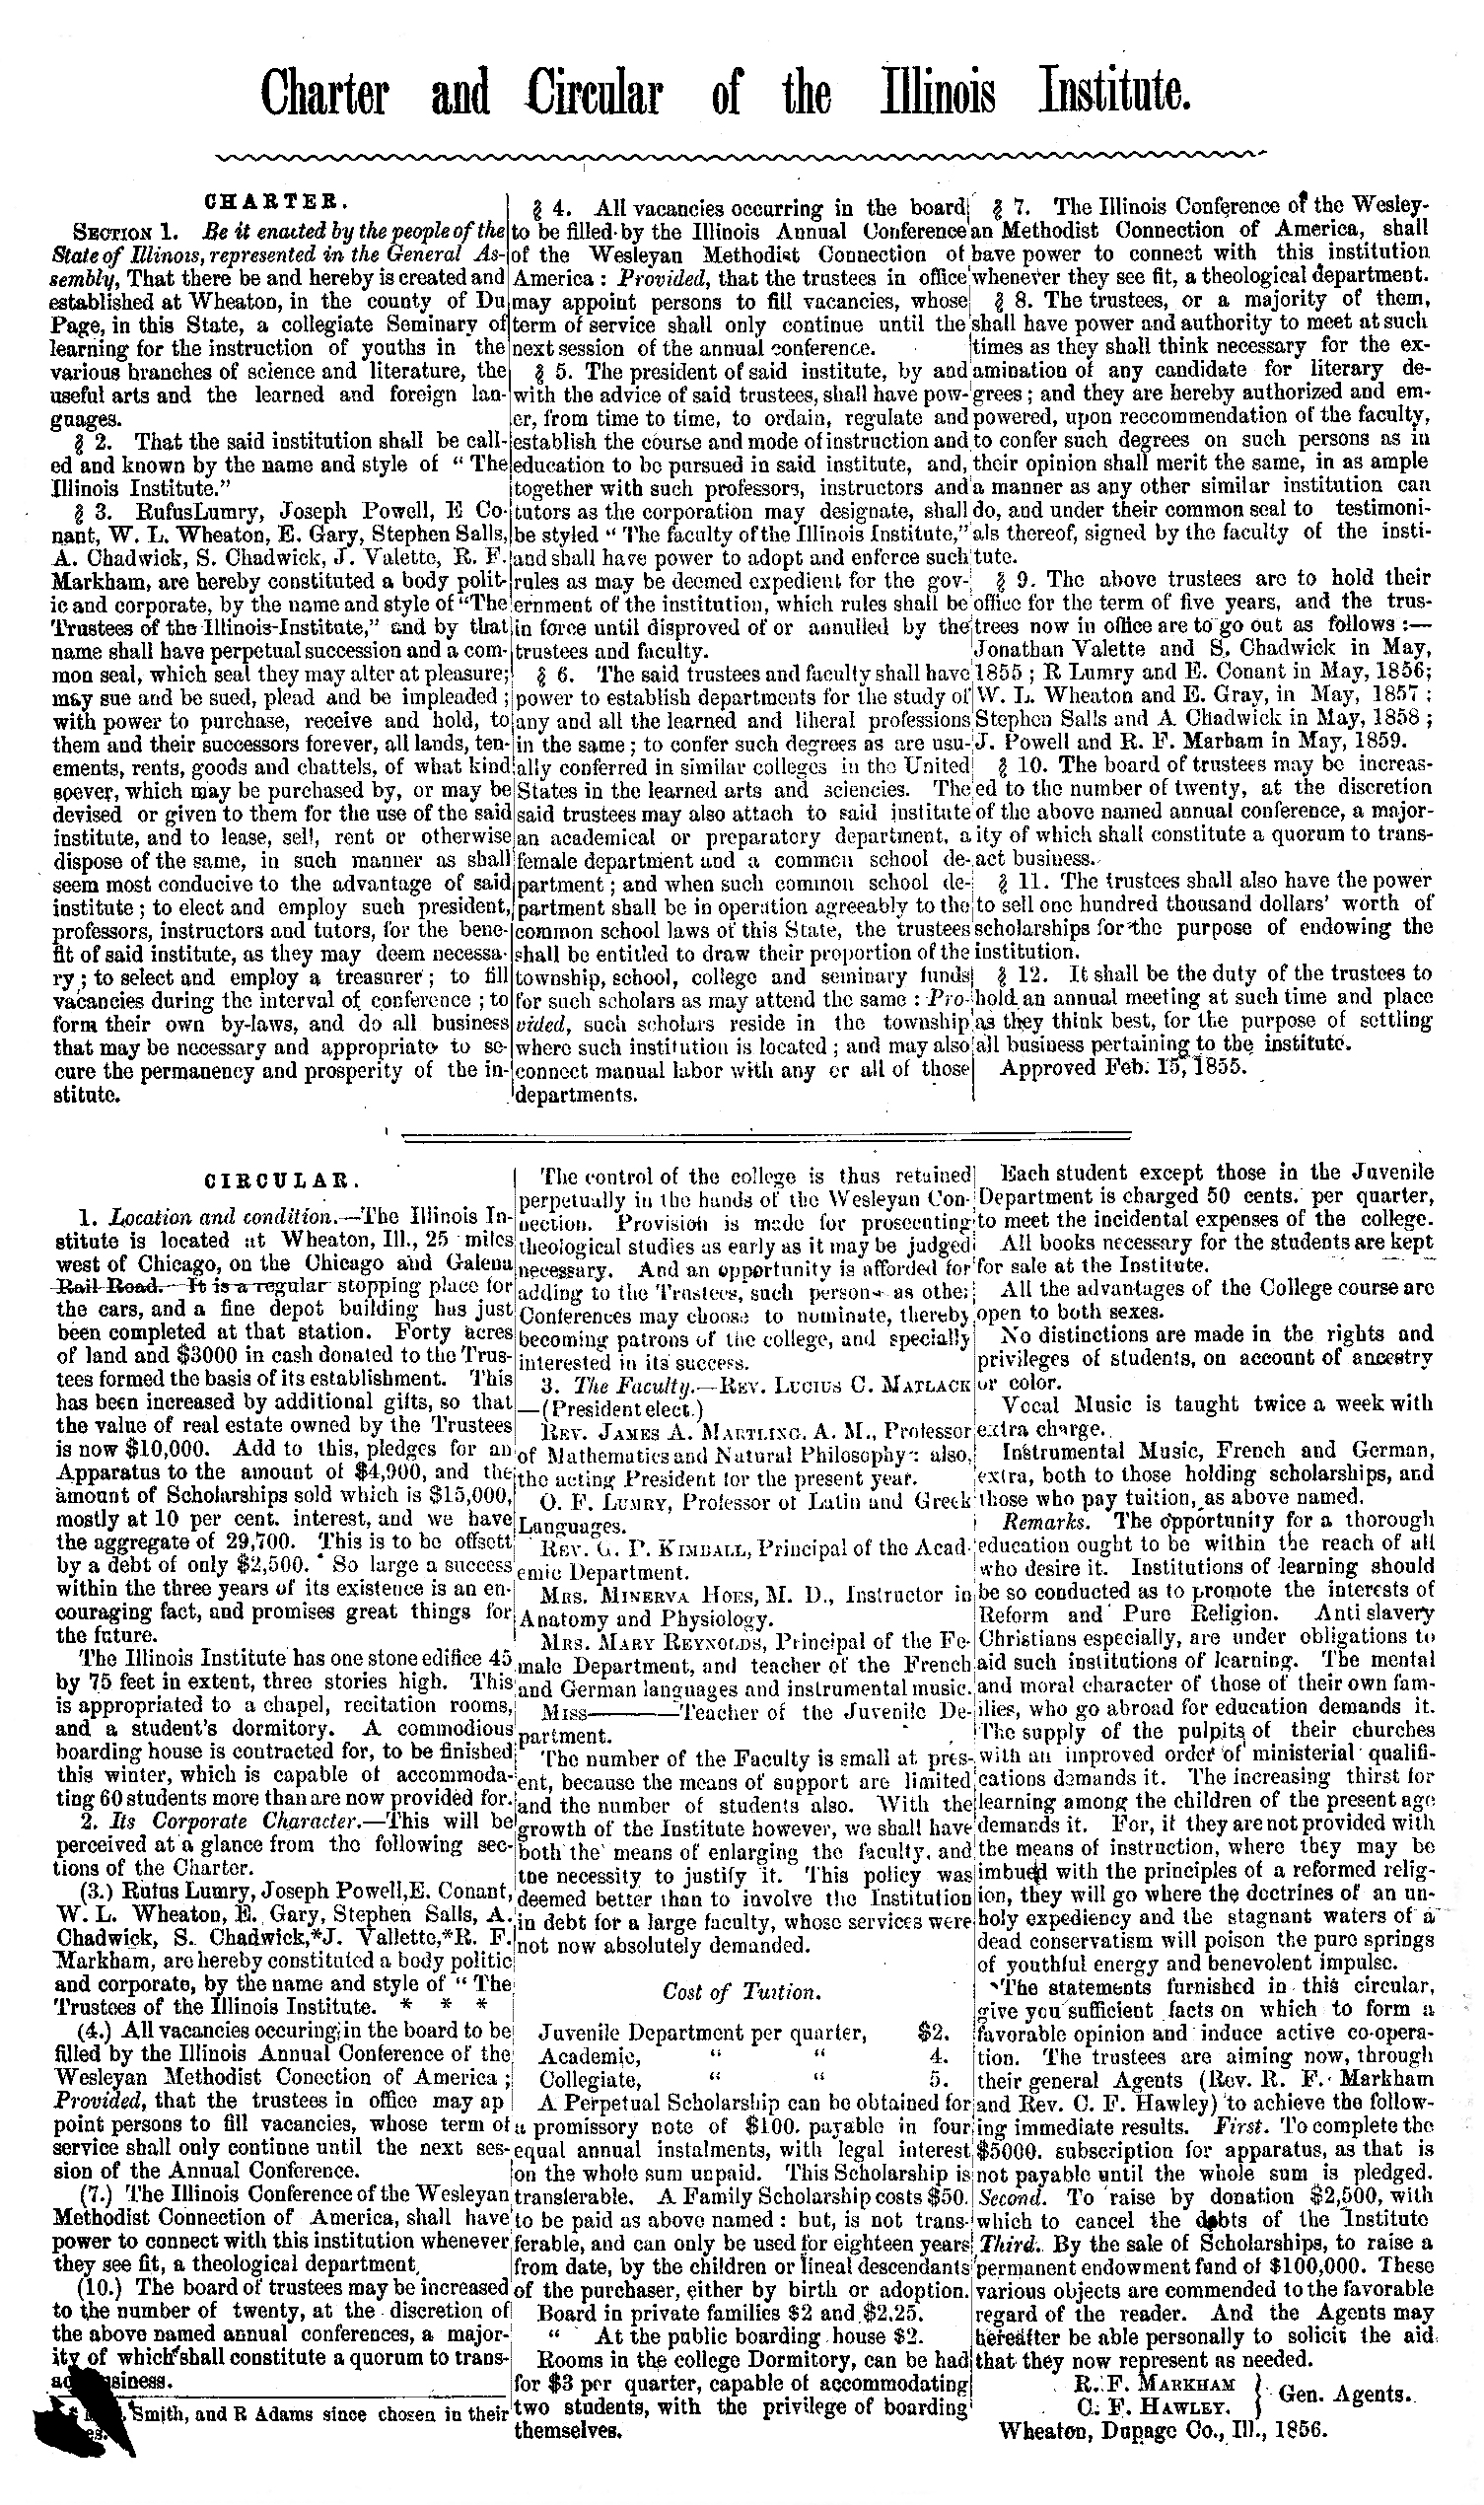 Illinois-Institute-charter-4.png